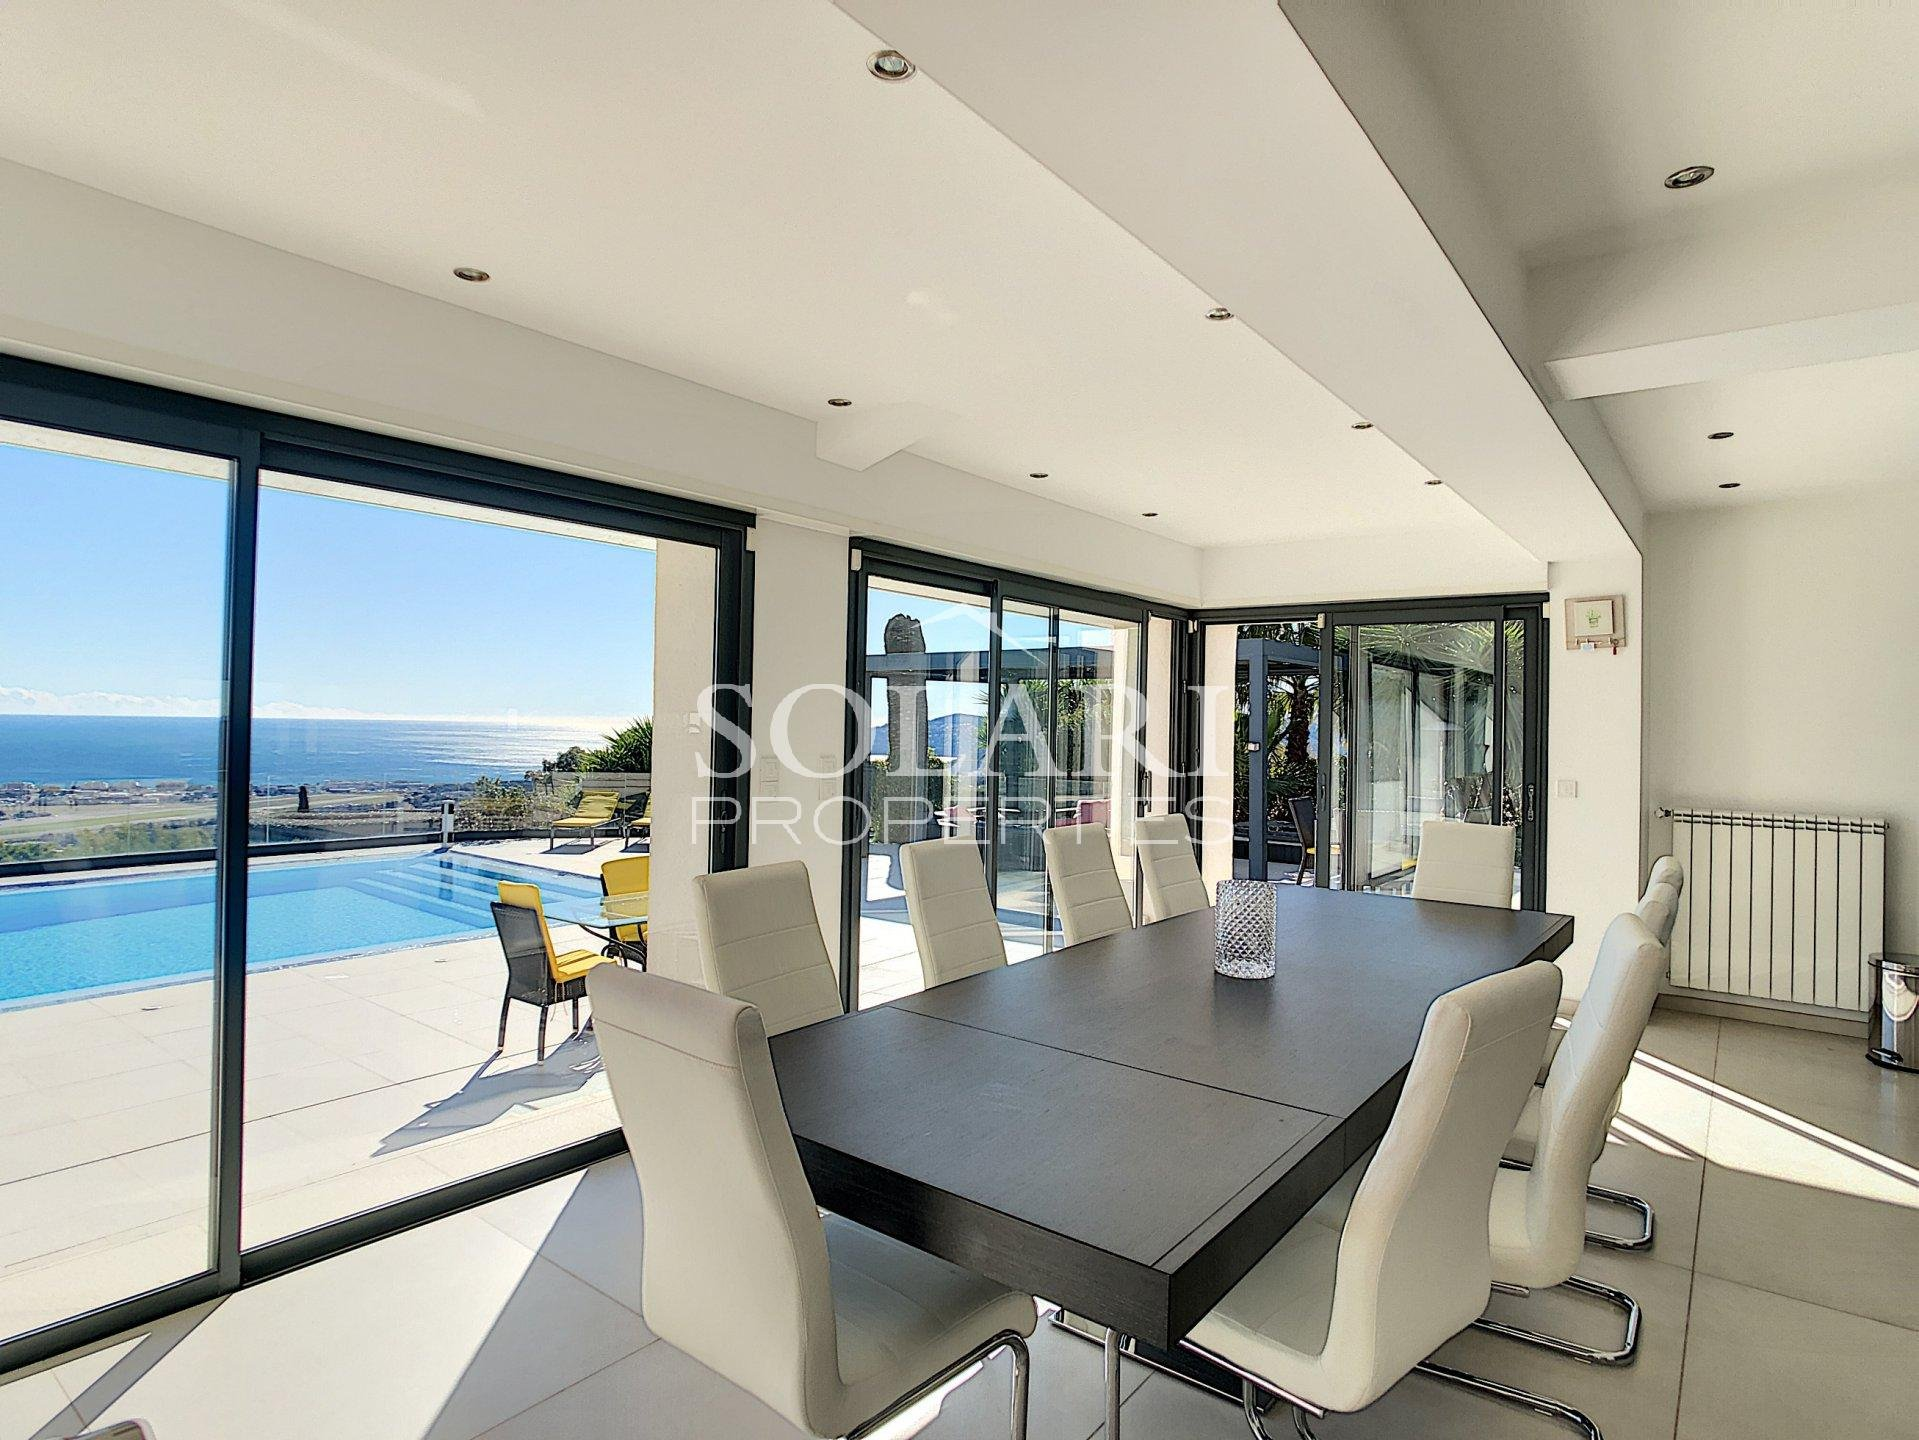 Modern villa with pool and sea view in Cannes Bay